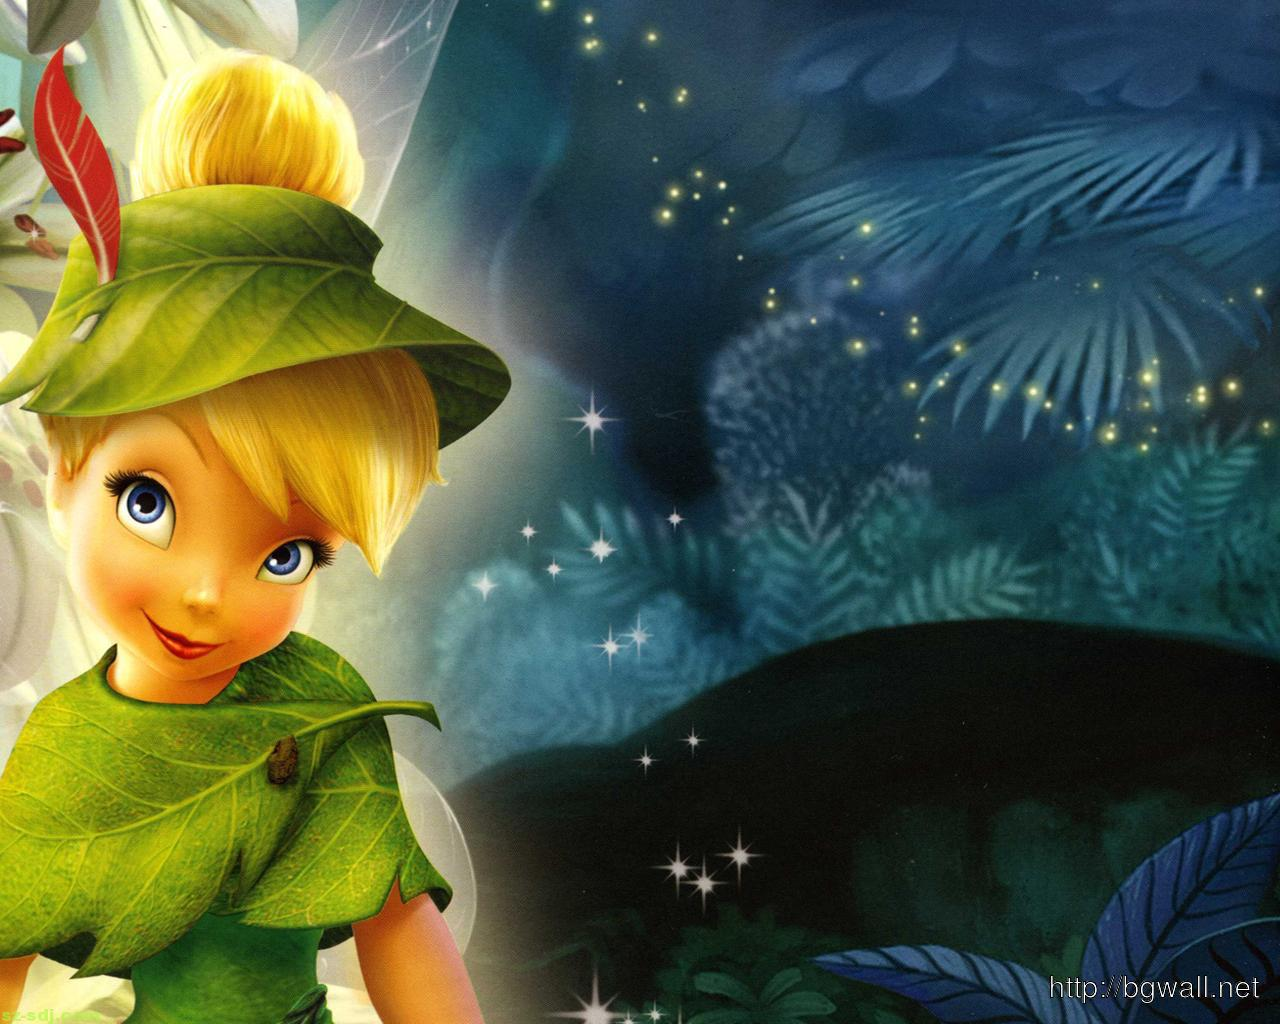 Cute litle tinkerbell wallpaper background wallpaper hd cute litle tinkerbell wallpaper voltagebd Gallery